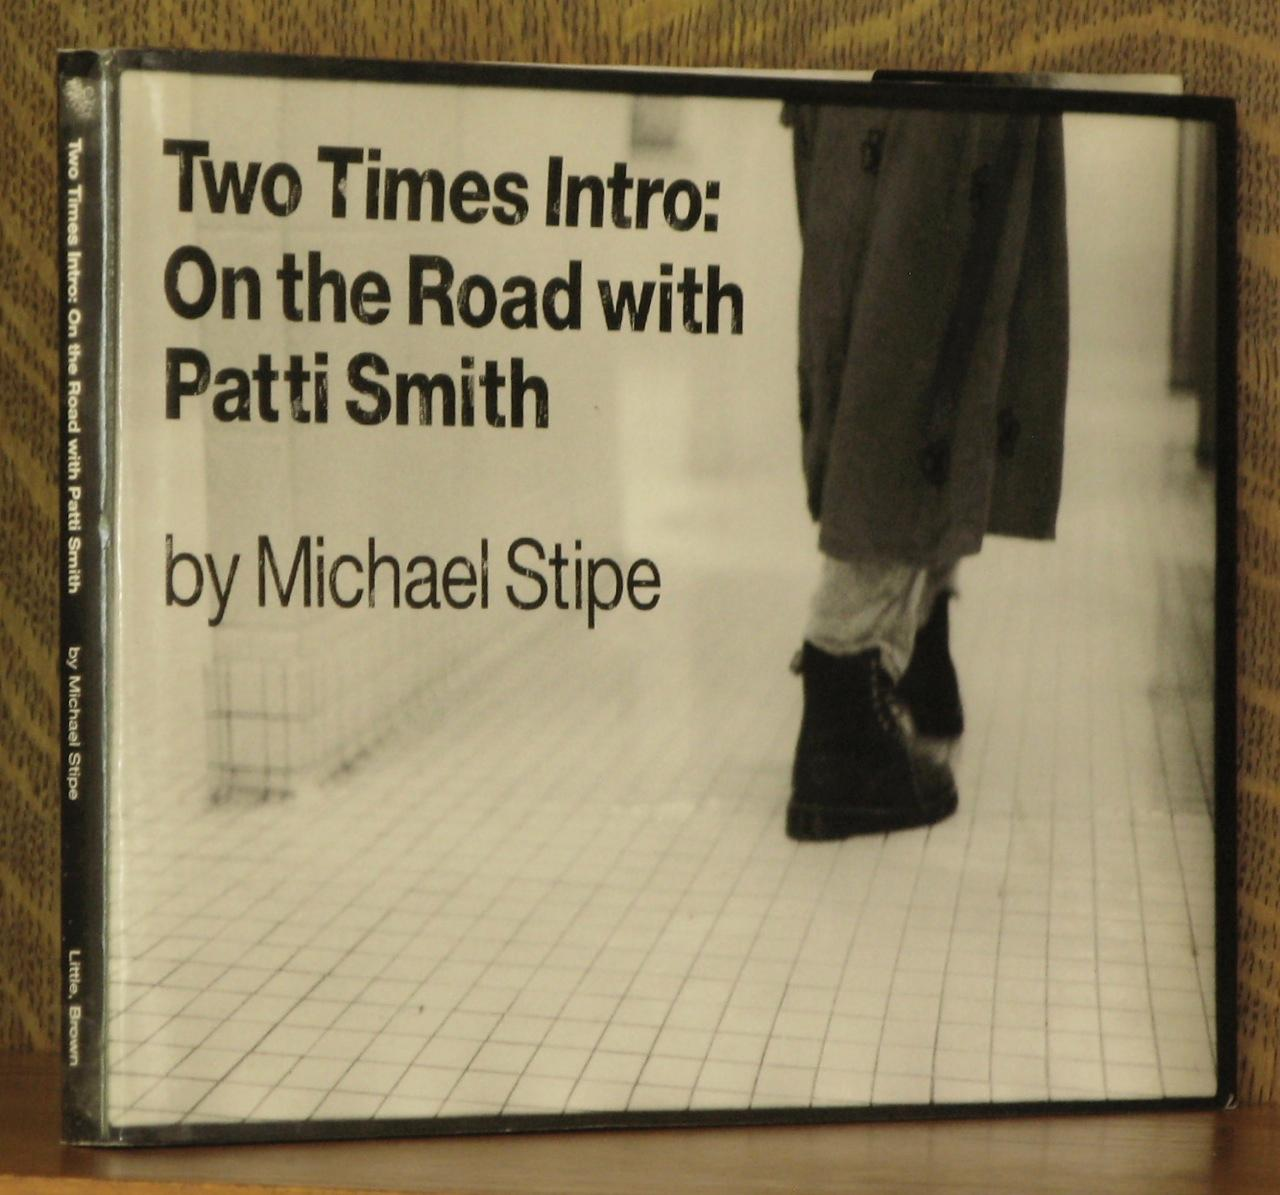 TWO TIMES INTRO: ON THE ROAD WITH PATTI SMITH - Michael Stipe